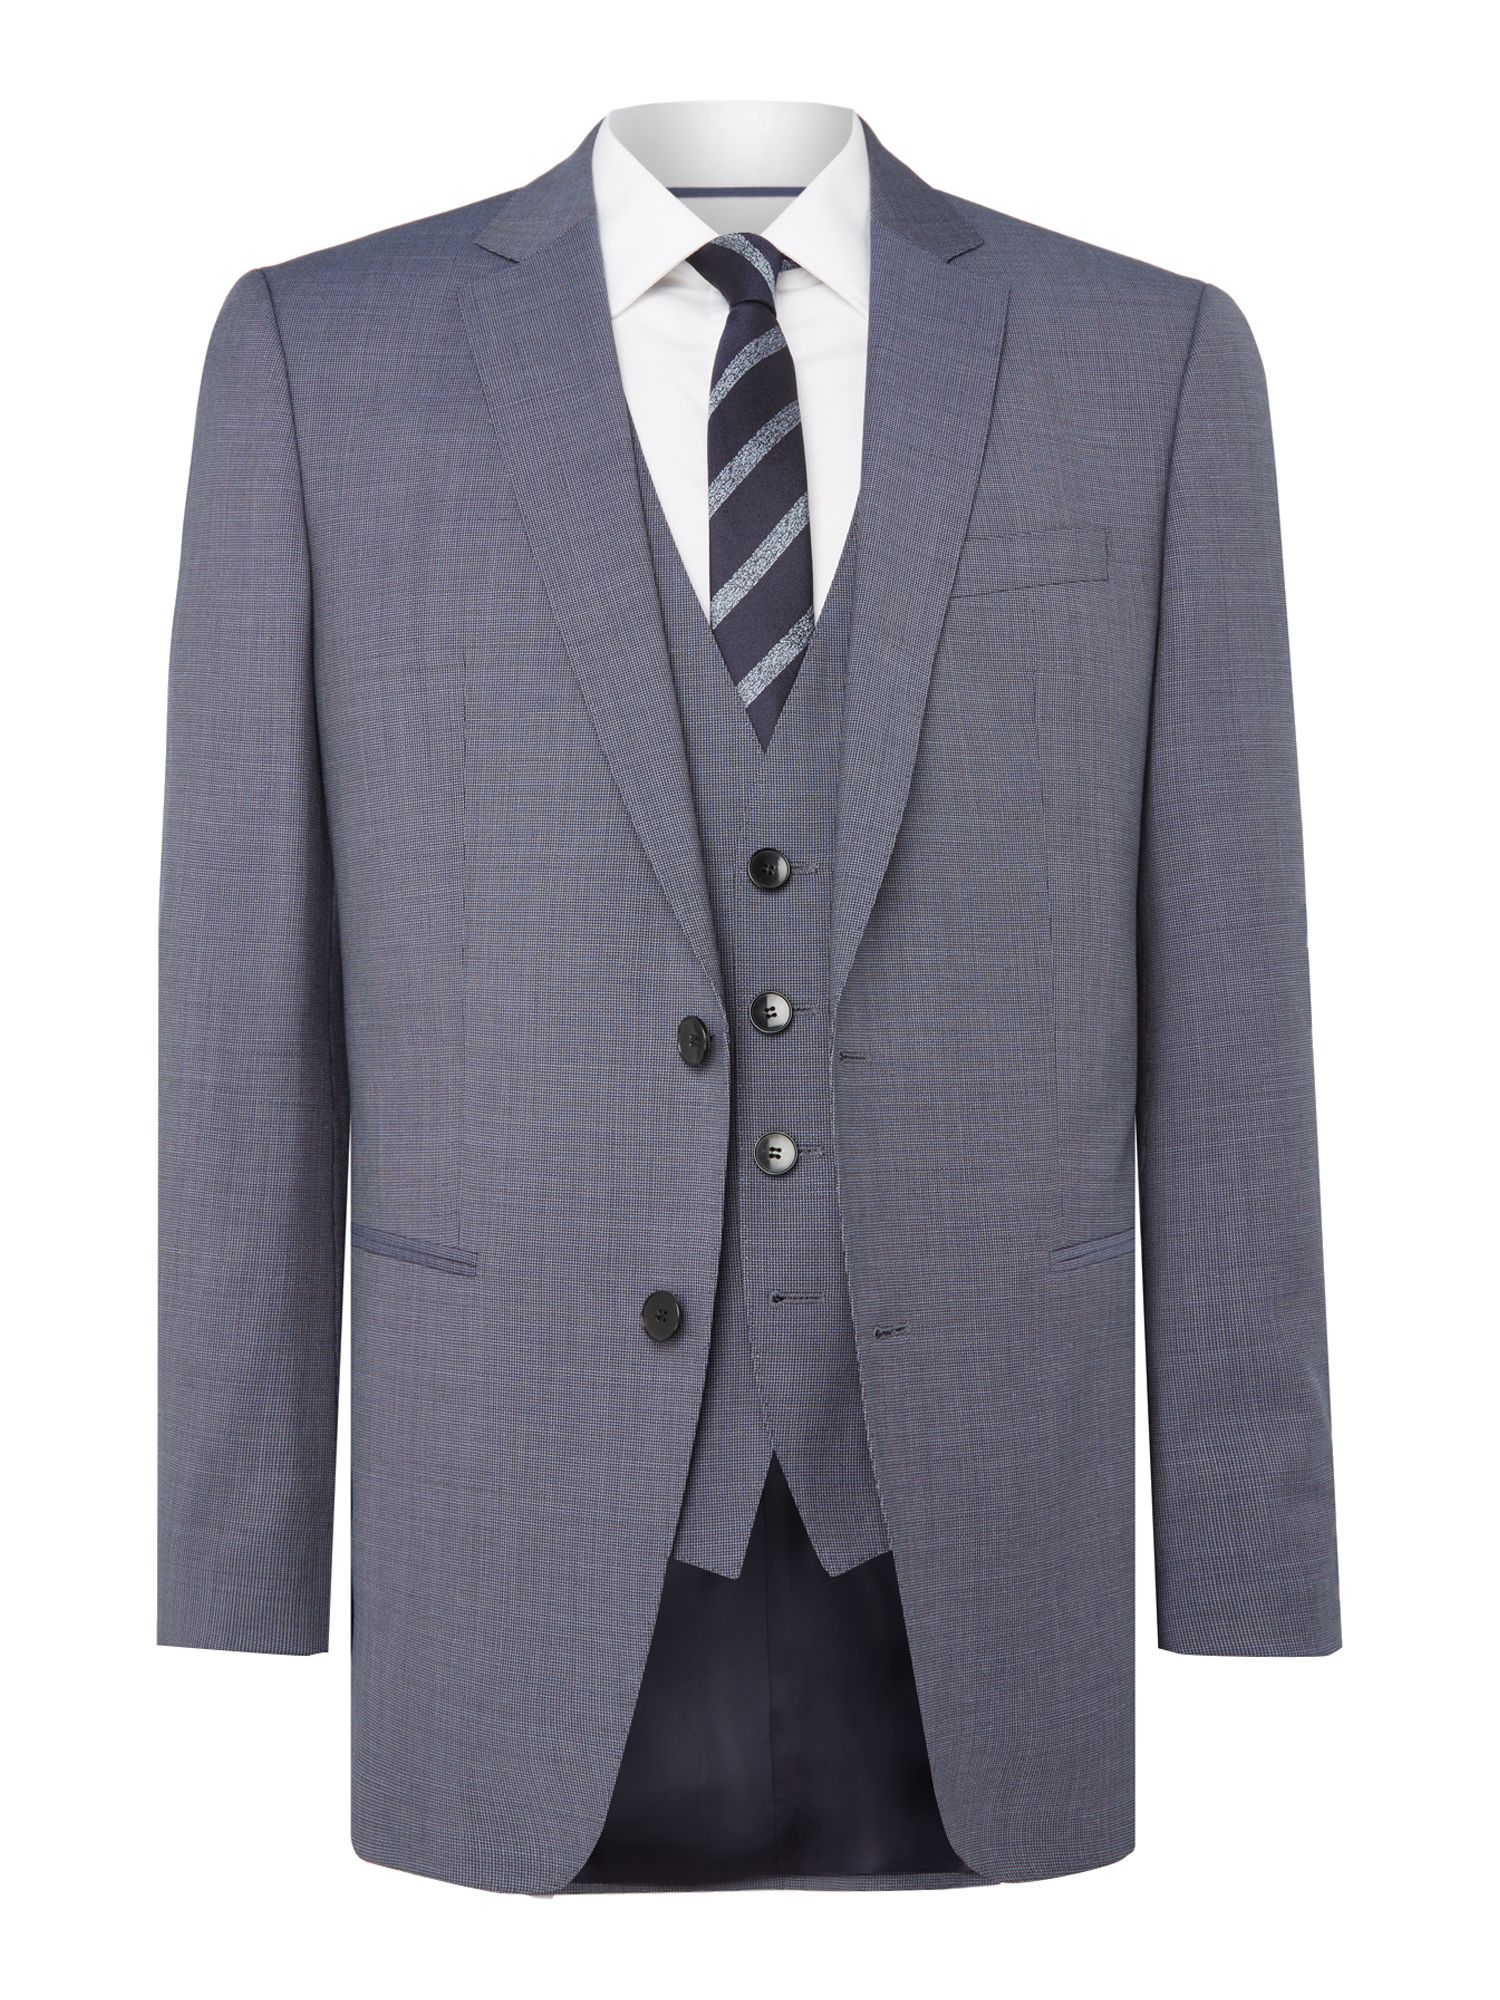 Men's Hugo Boss Textured Notch Collar Slim Fit Suit, Light Blue